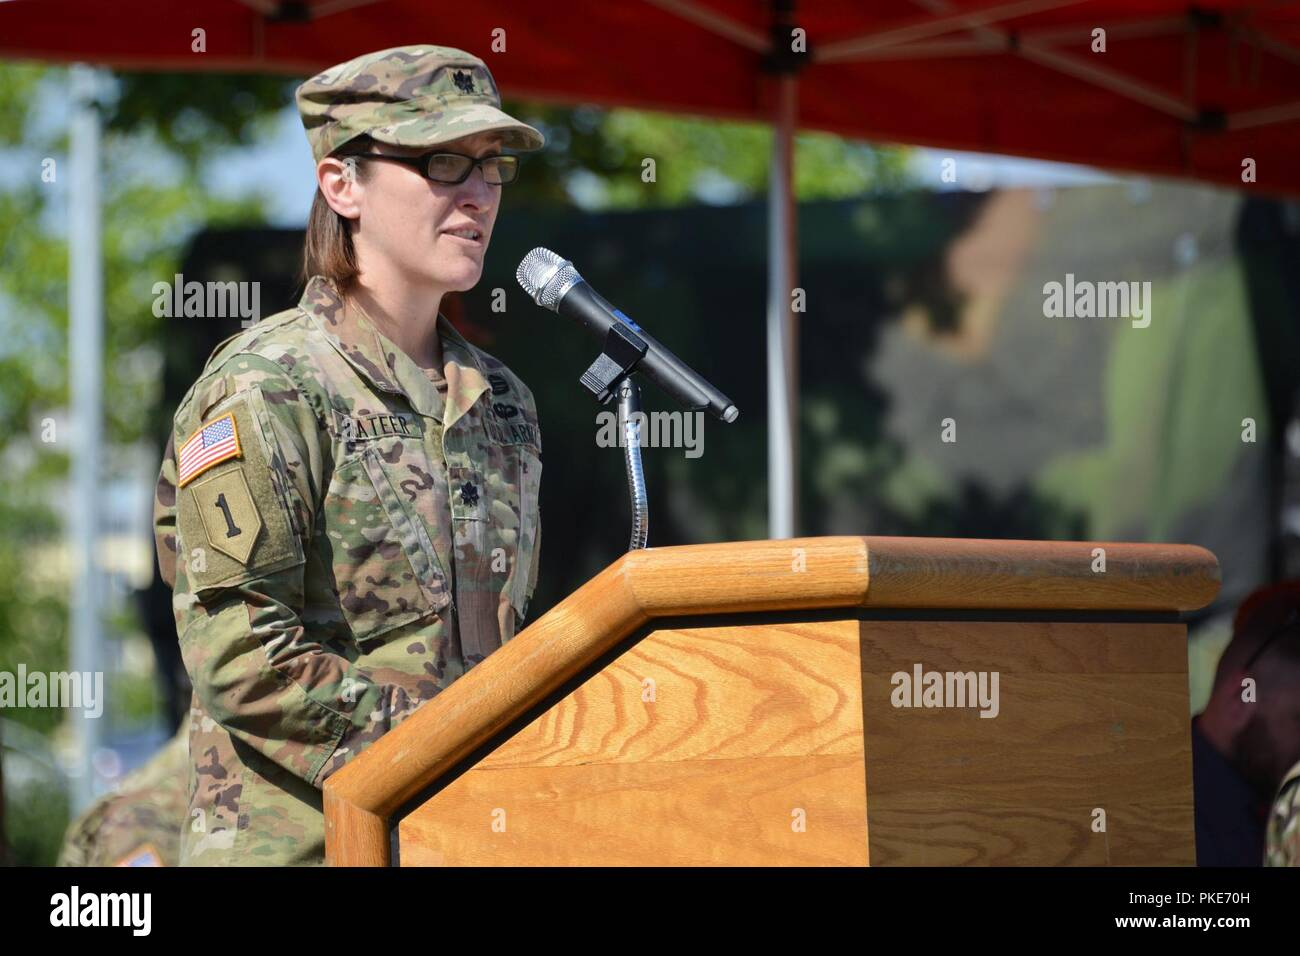 The 44th Expeditionary Signal Battalion Commander U S Army Lt Col Heather Mcateer Delivers A Speech During The Battalion S Change Of Responsibility Ceremony At Tower Barracks Grafenwoehr Germany July 27 2018 Stock Photo Alamy